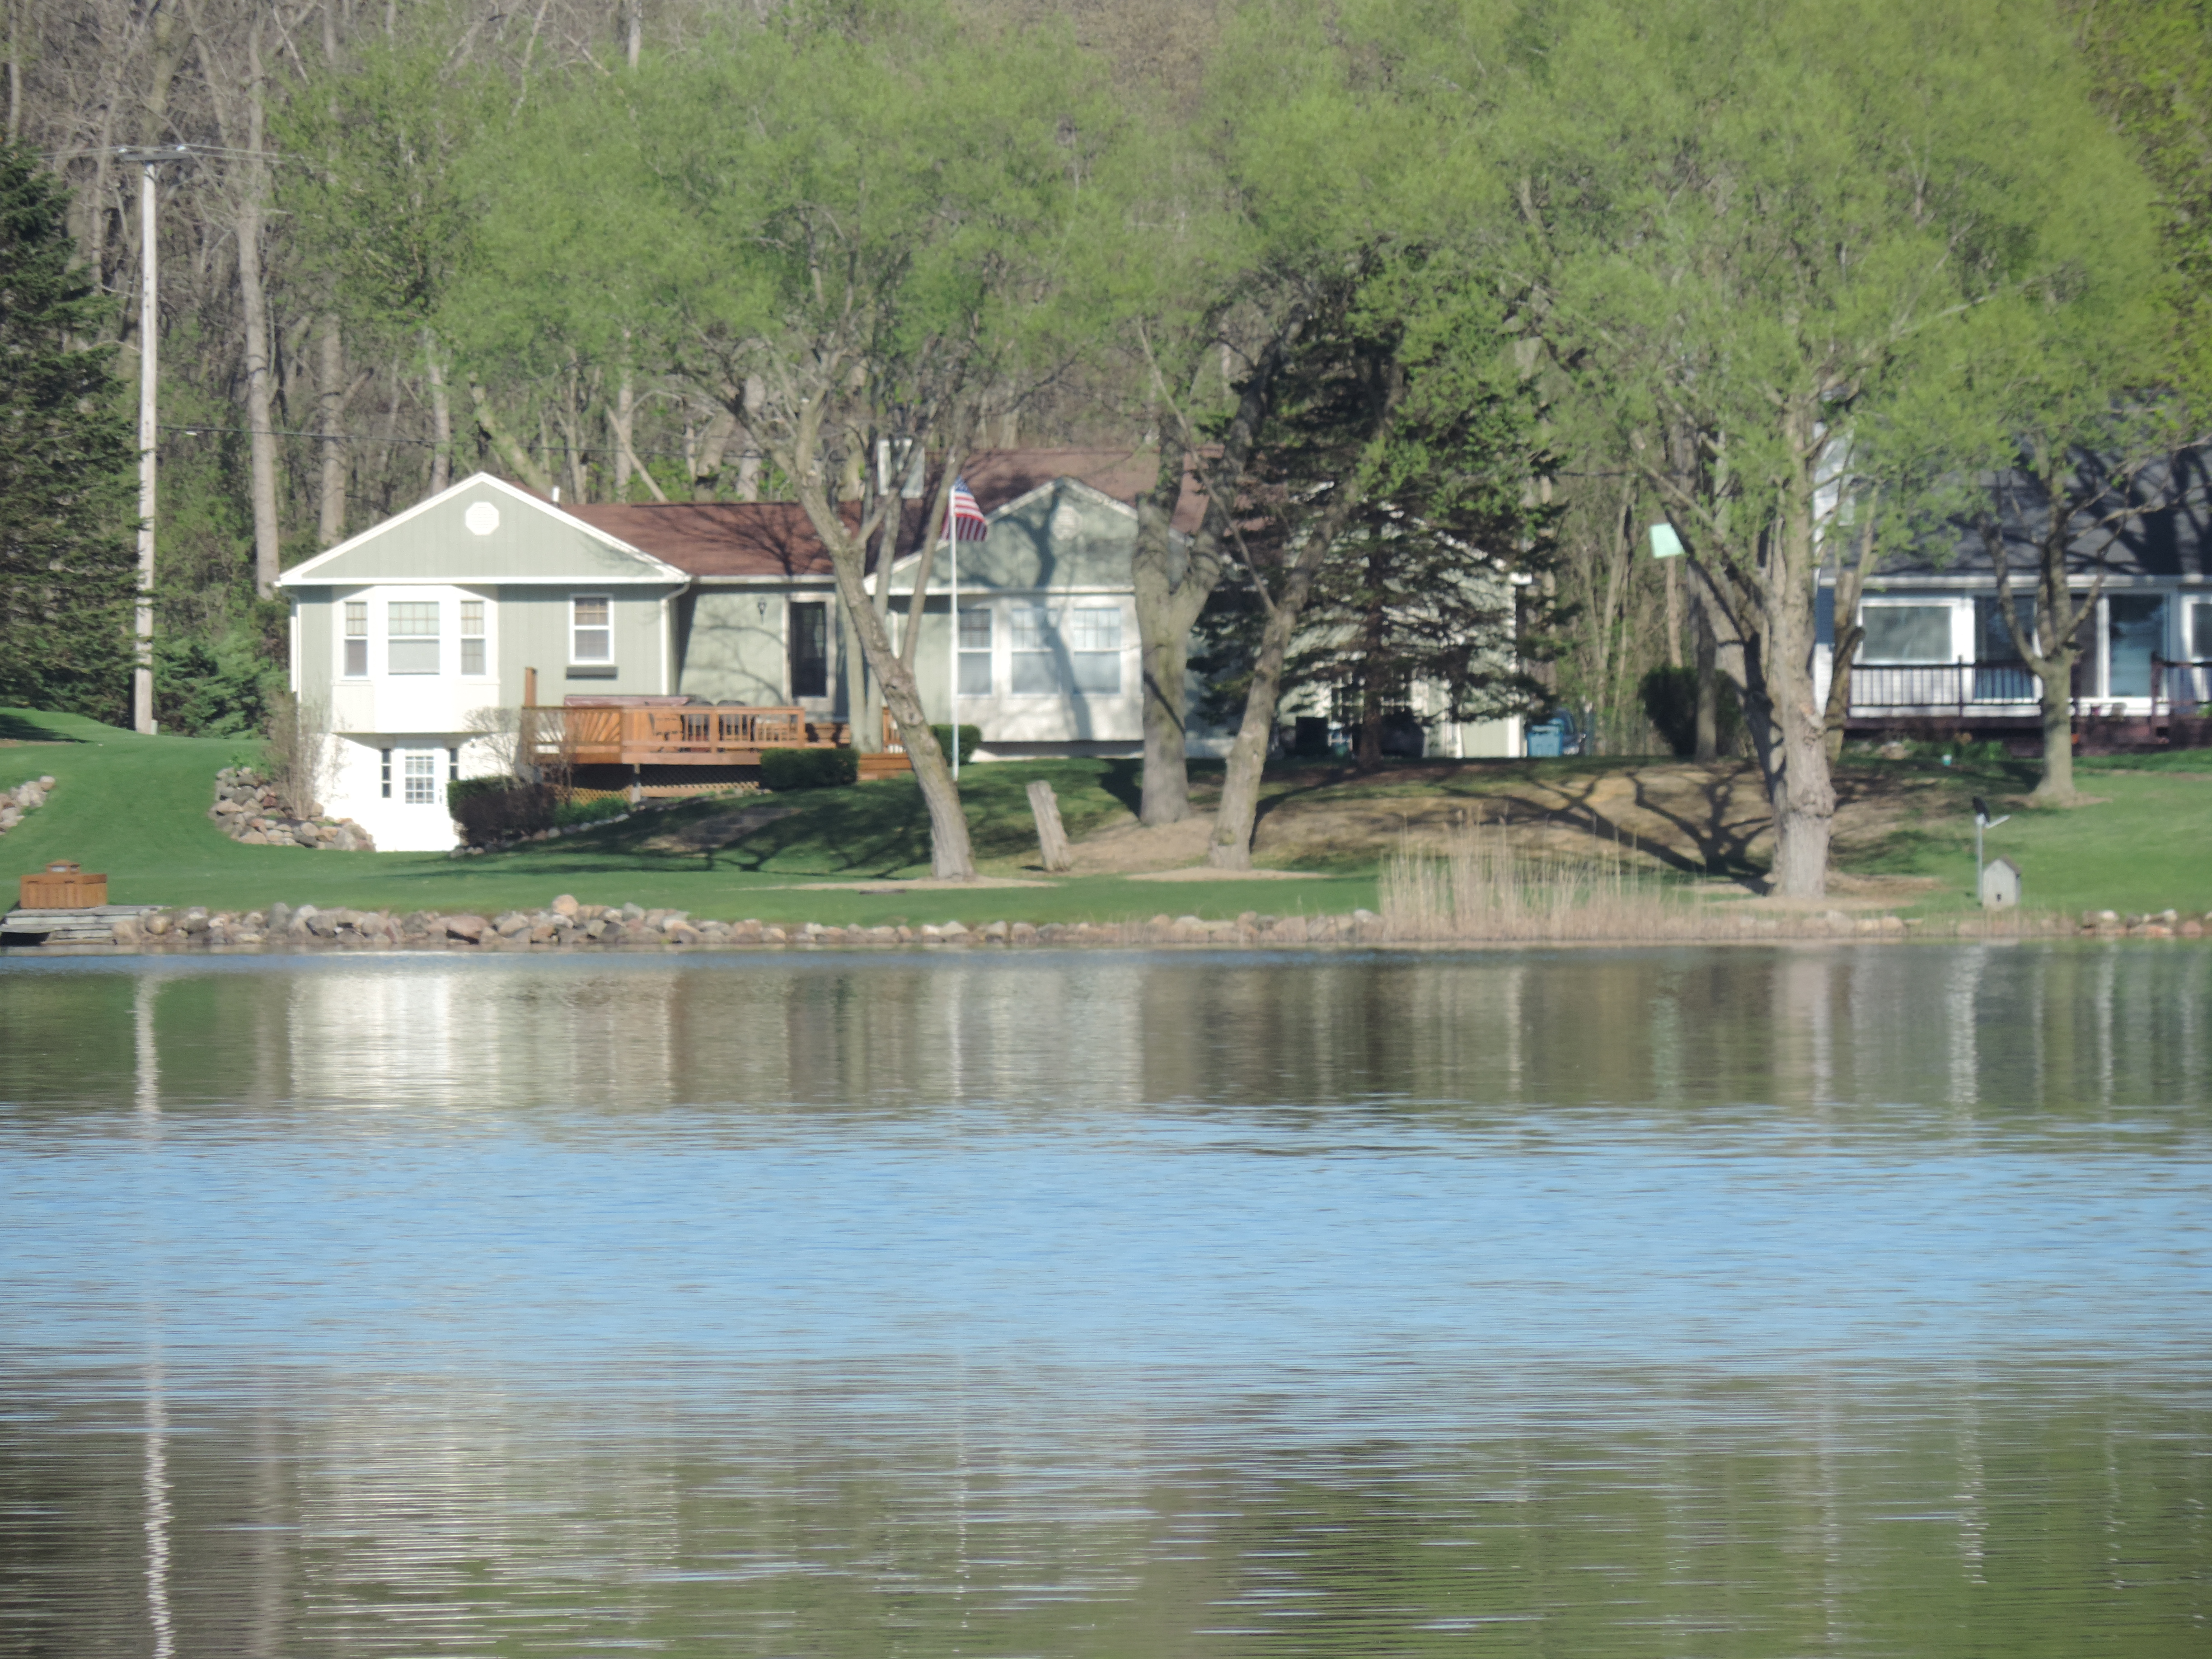 Lake houses for sale in Holly Michigan   Oakland County Lakefront ...